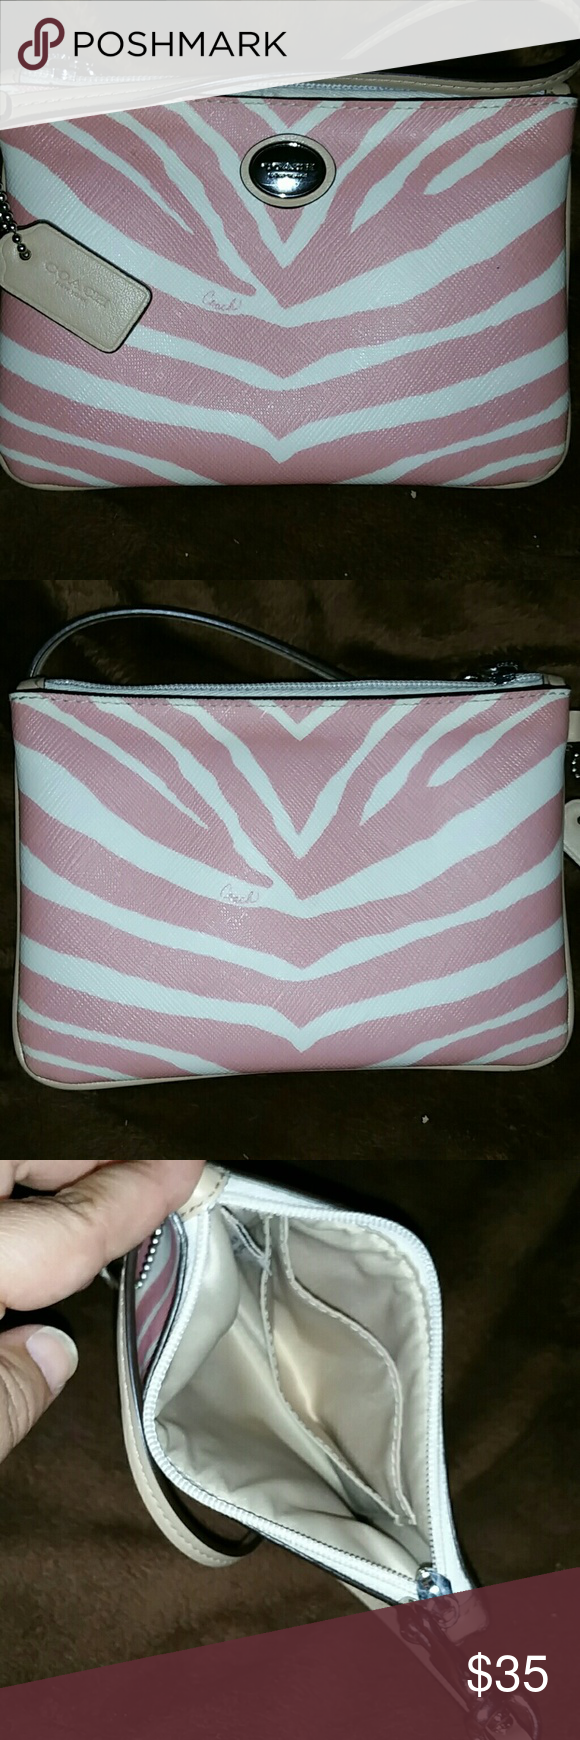 Authentic coach wristlet Used 1 time, this pink and white zebra print wristlet would be a perfect accessory to your summer ensemble. It is absolutely flawless with zero marks, scuffs, or stains. Hurry up and get this today before someone else snatches this beautiful wristlet :) Coach Bags Clutches & Wristlets